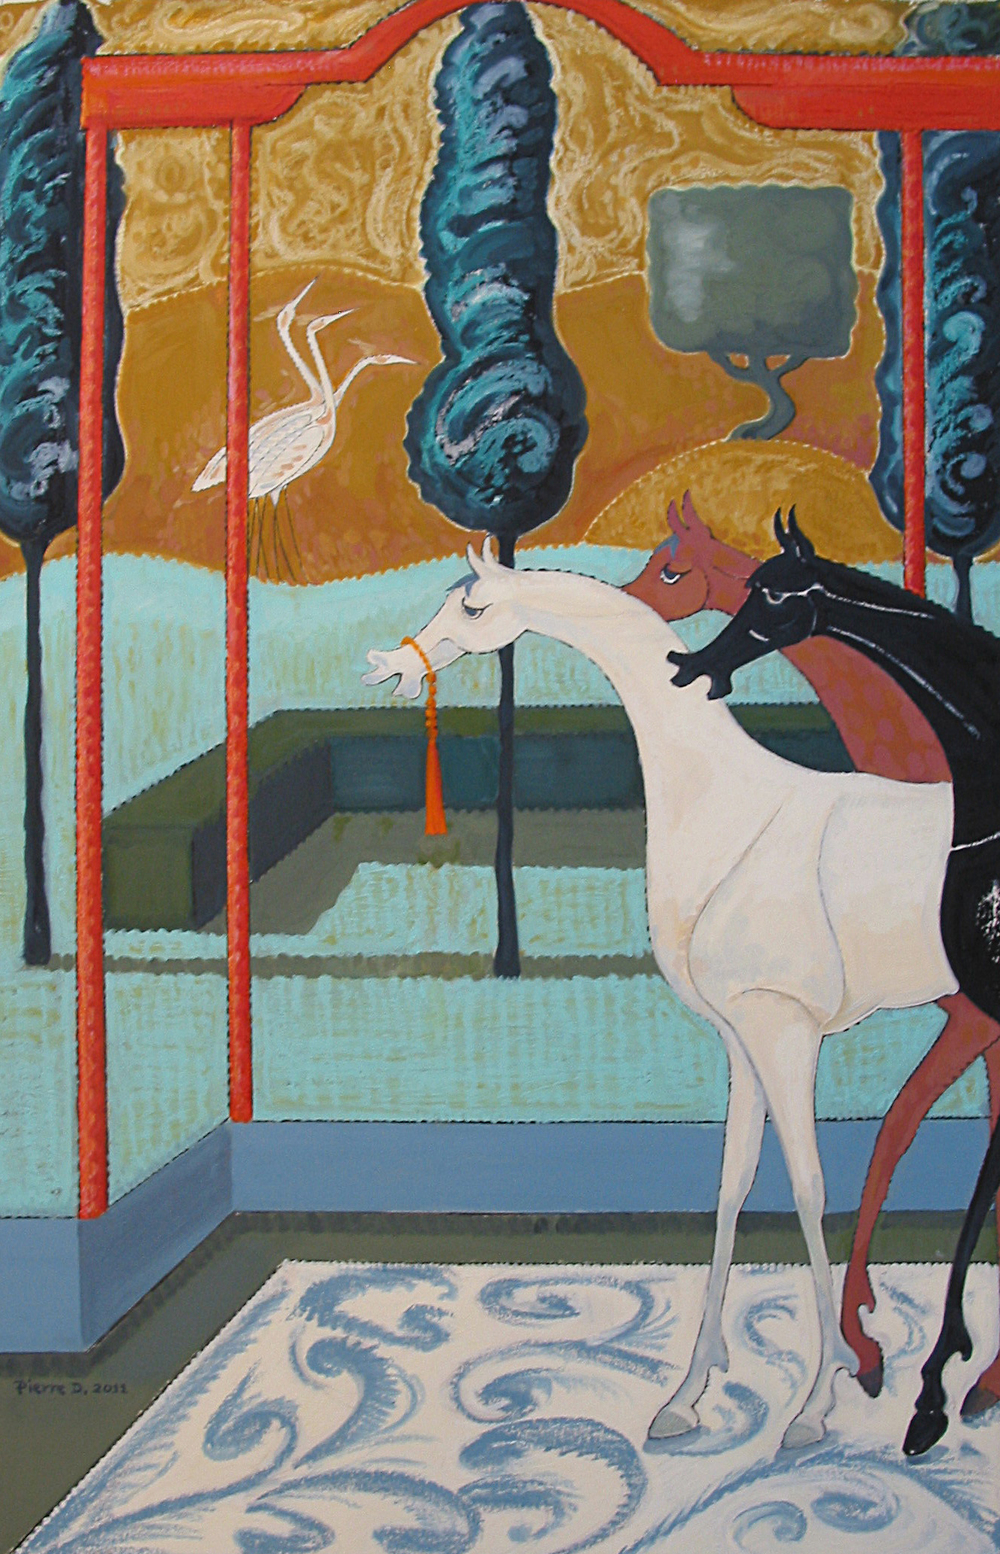 Moghul l the Three Kings   ©  Oil on fine paper  97 cm high x 63 cm wide  The Pavilion is of Moghul design and the elongated horses, Persian.  The carpet seems oddly placed and painted freely to disturb the classic composition.  This open landscape has the curiously still atmosphere of a silent room, which has been hard to recapture in other paintings.